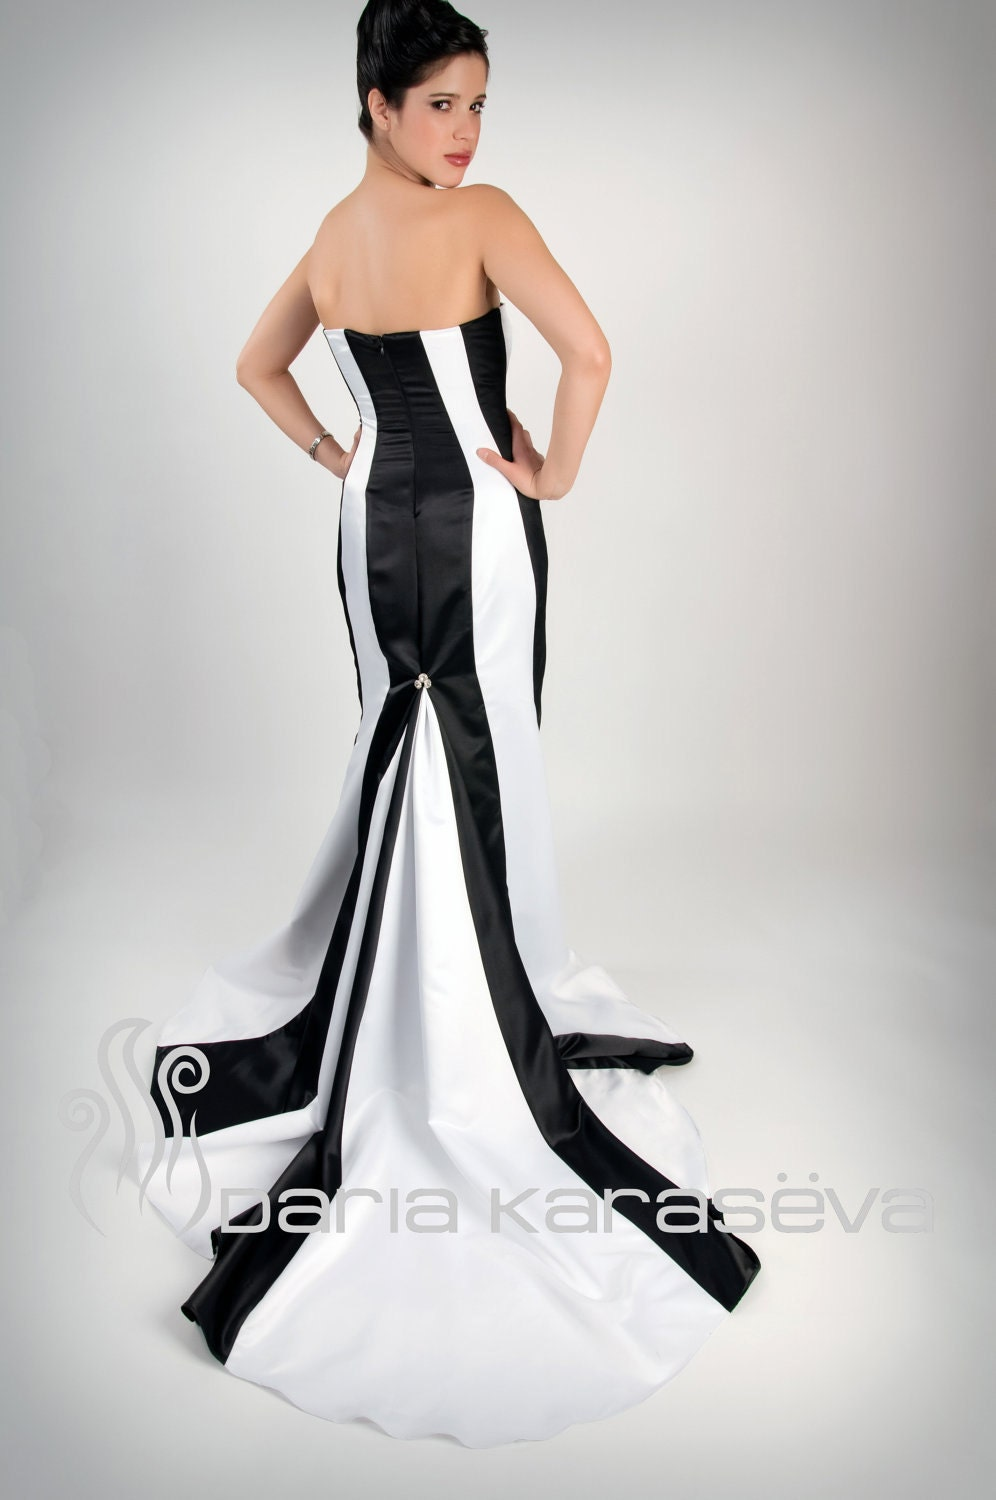 Get the best deals on black and white strapless midi dress and save up to 70% off at Poshmark now! Whatever you're shopping for, we've got it.